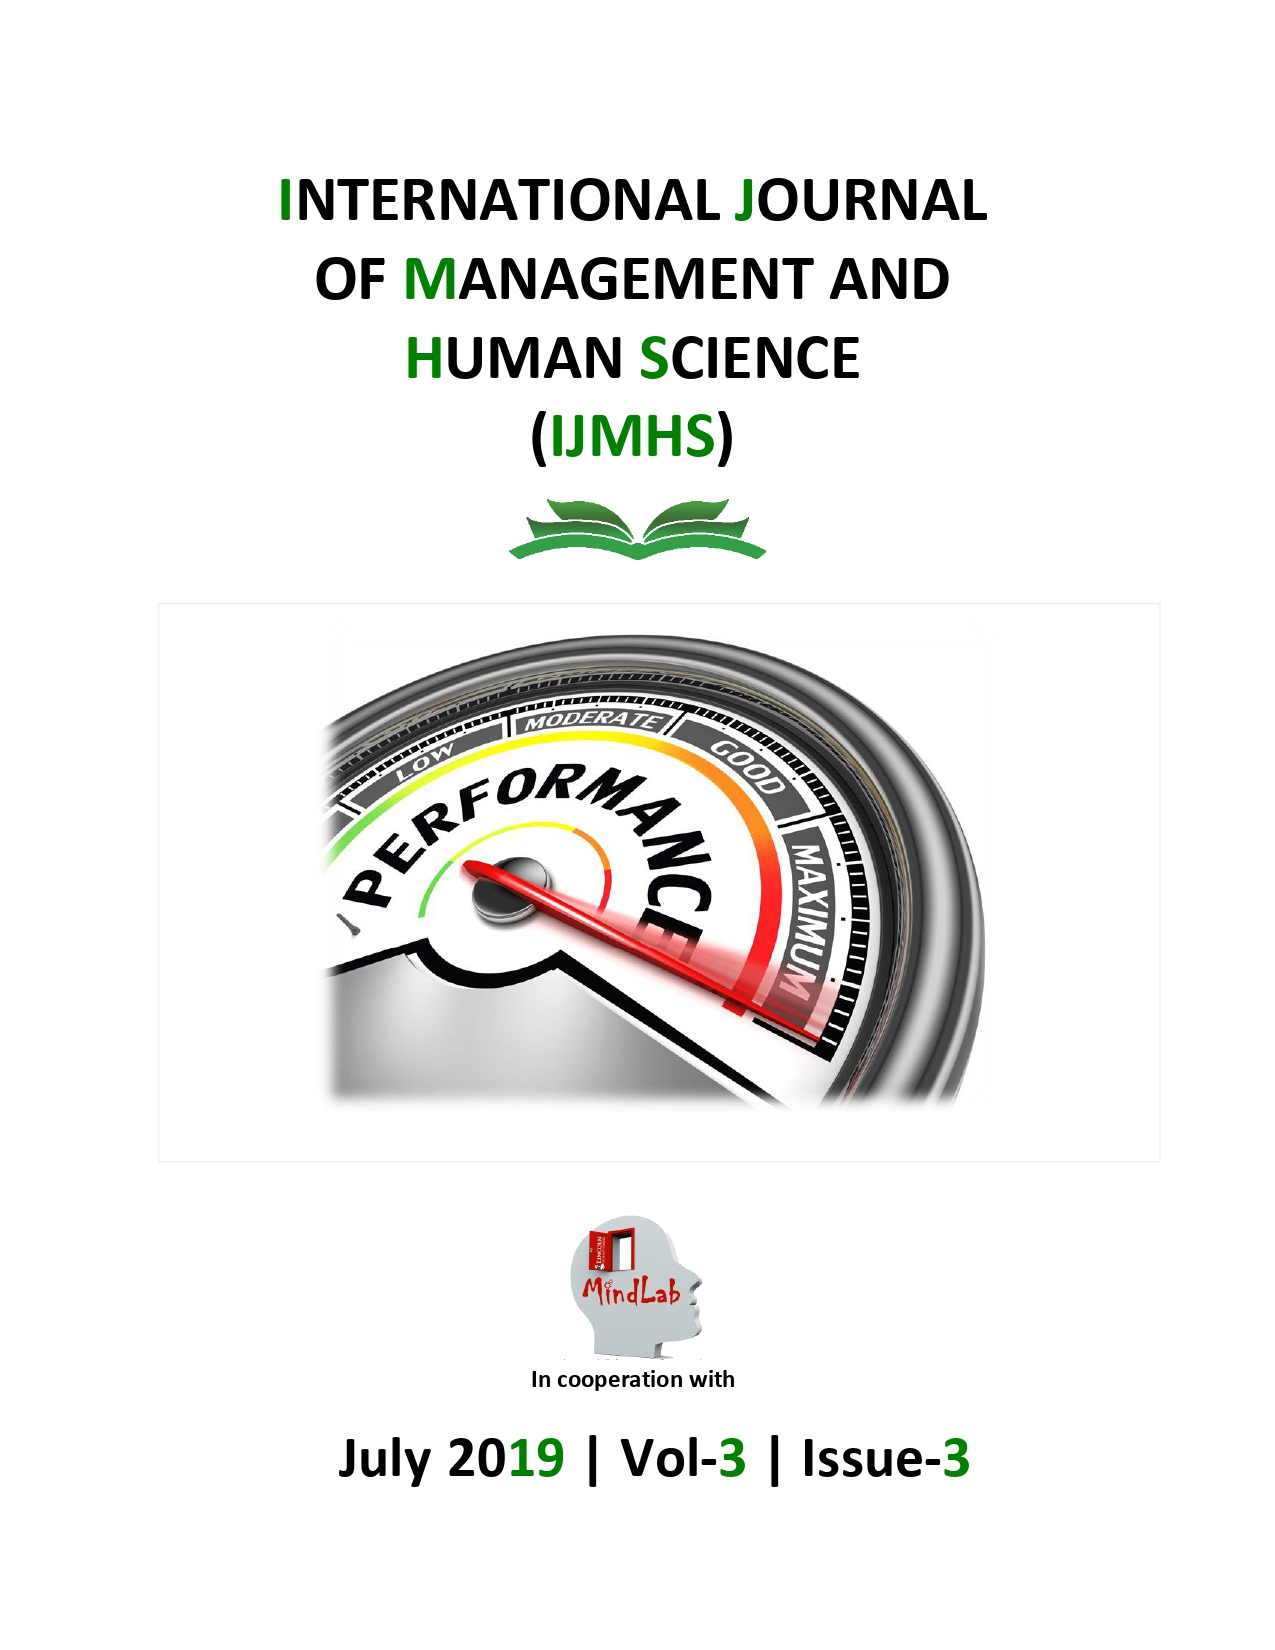 View Vol. 3 No. 3 (2019): International Journal of Management and Human Science (IJMHS)